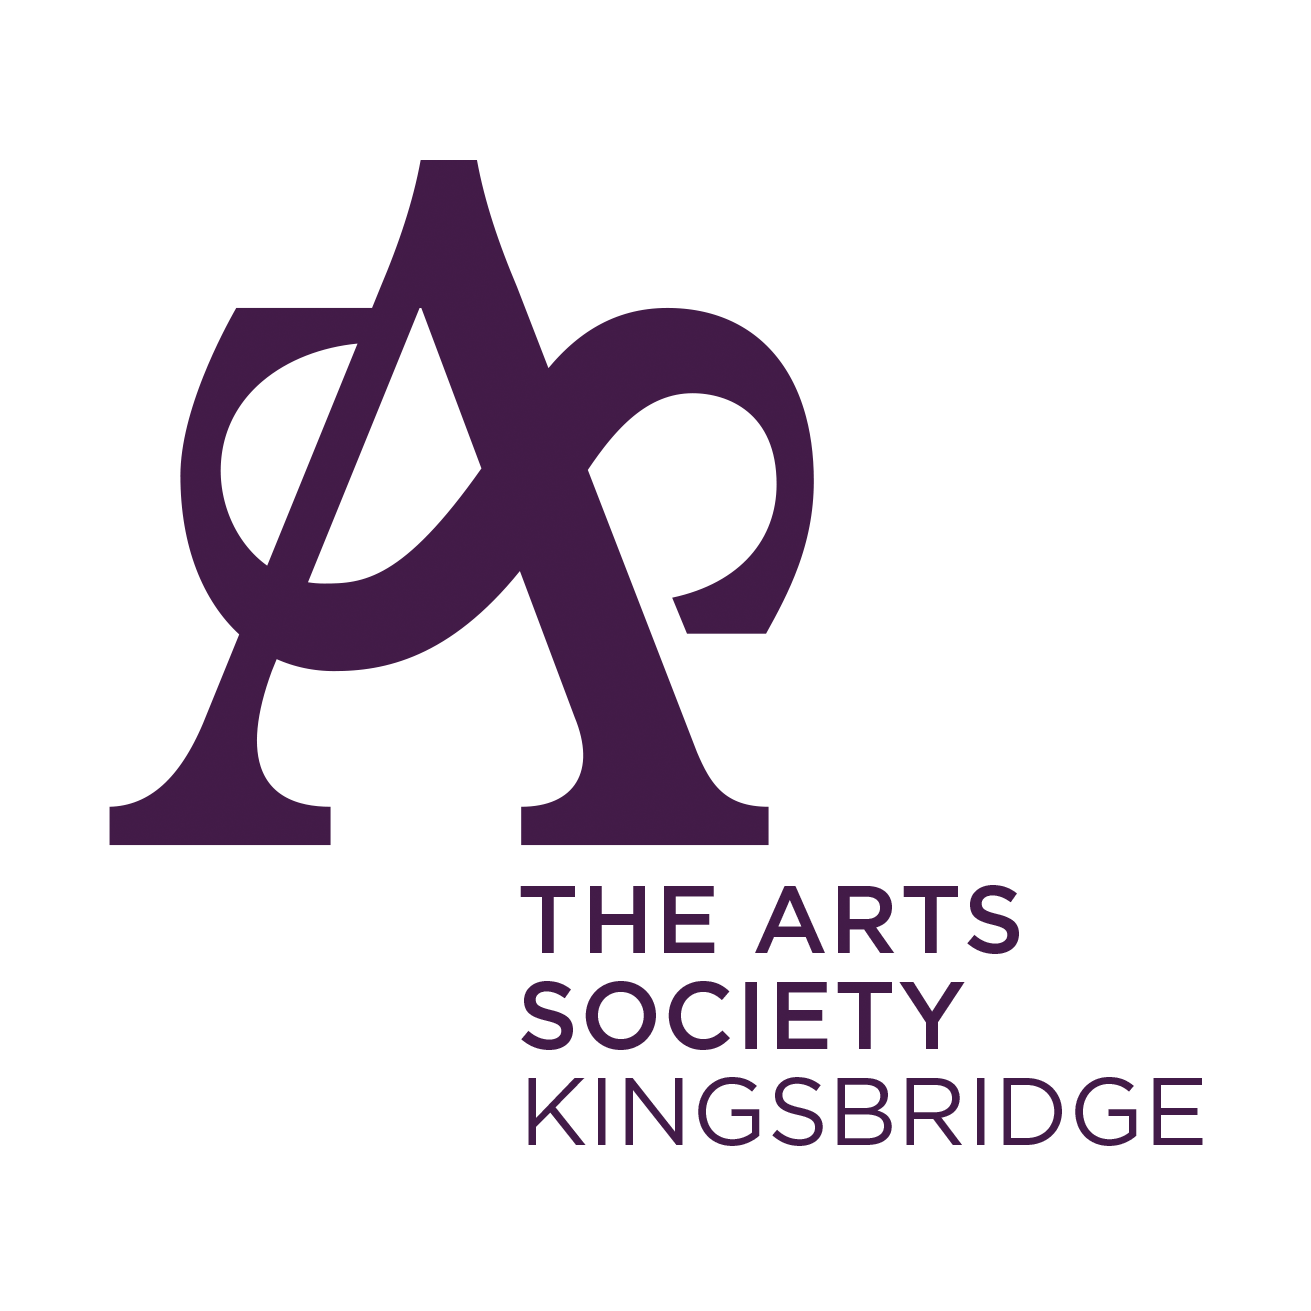 The Arts Society - Kingsbridge